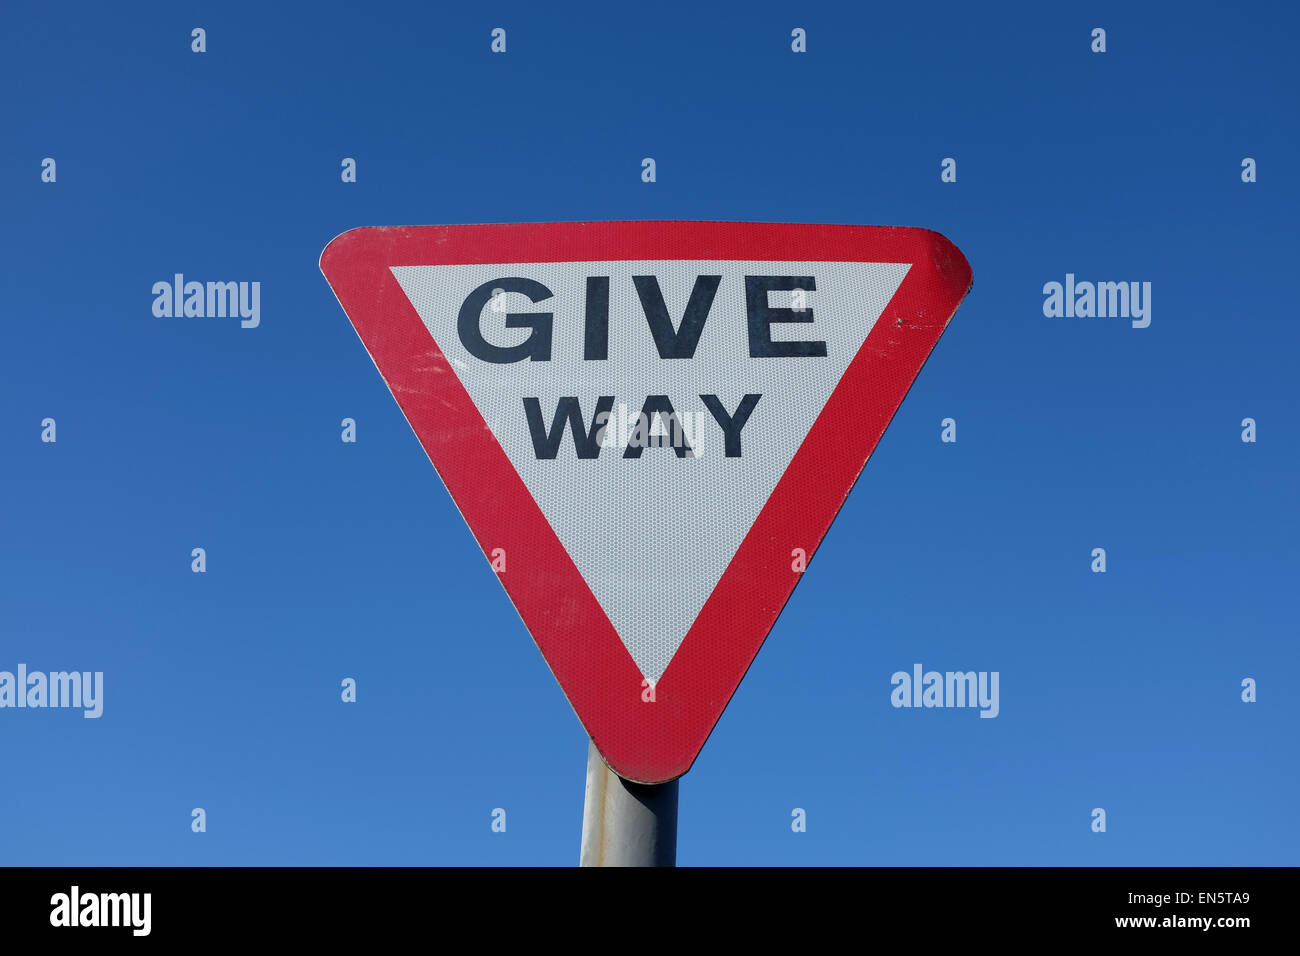 Give Way road sign against a blue background UK - Stock Image